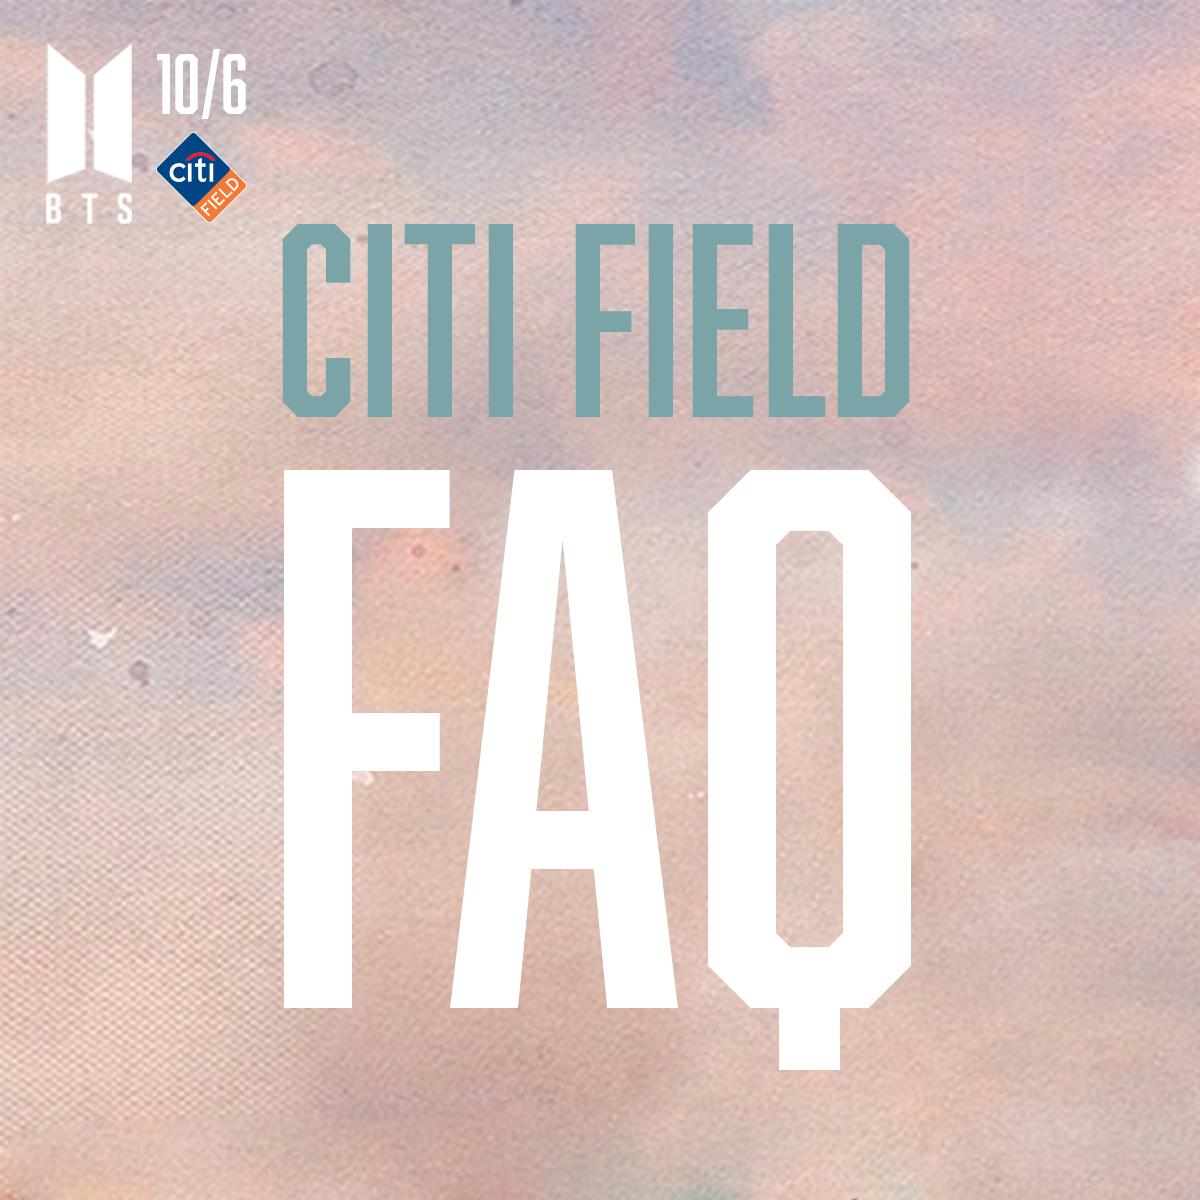 We are all excited for @bts_bighit, and are working with the band on a list of prohibited items for the show. While we don&#39;t have a full list yet, please note:  No luggage or large travel bag  No outside food &amp; beverage  No professional camera, video or recording devices <br>http://pic.twitter.com/sugf3OJ6Xq